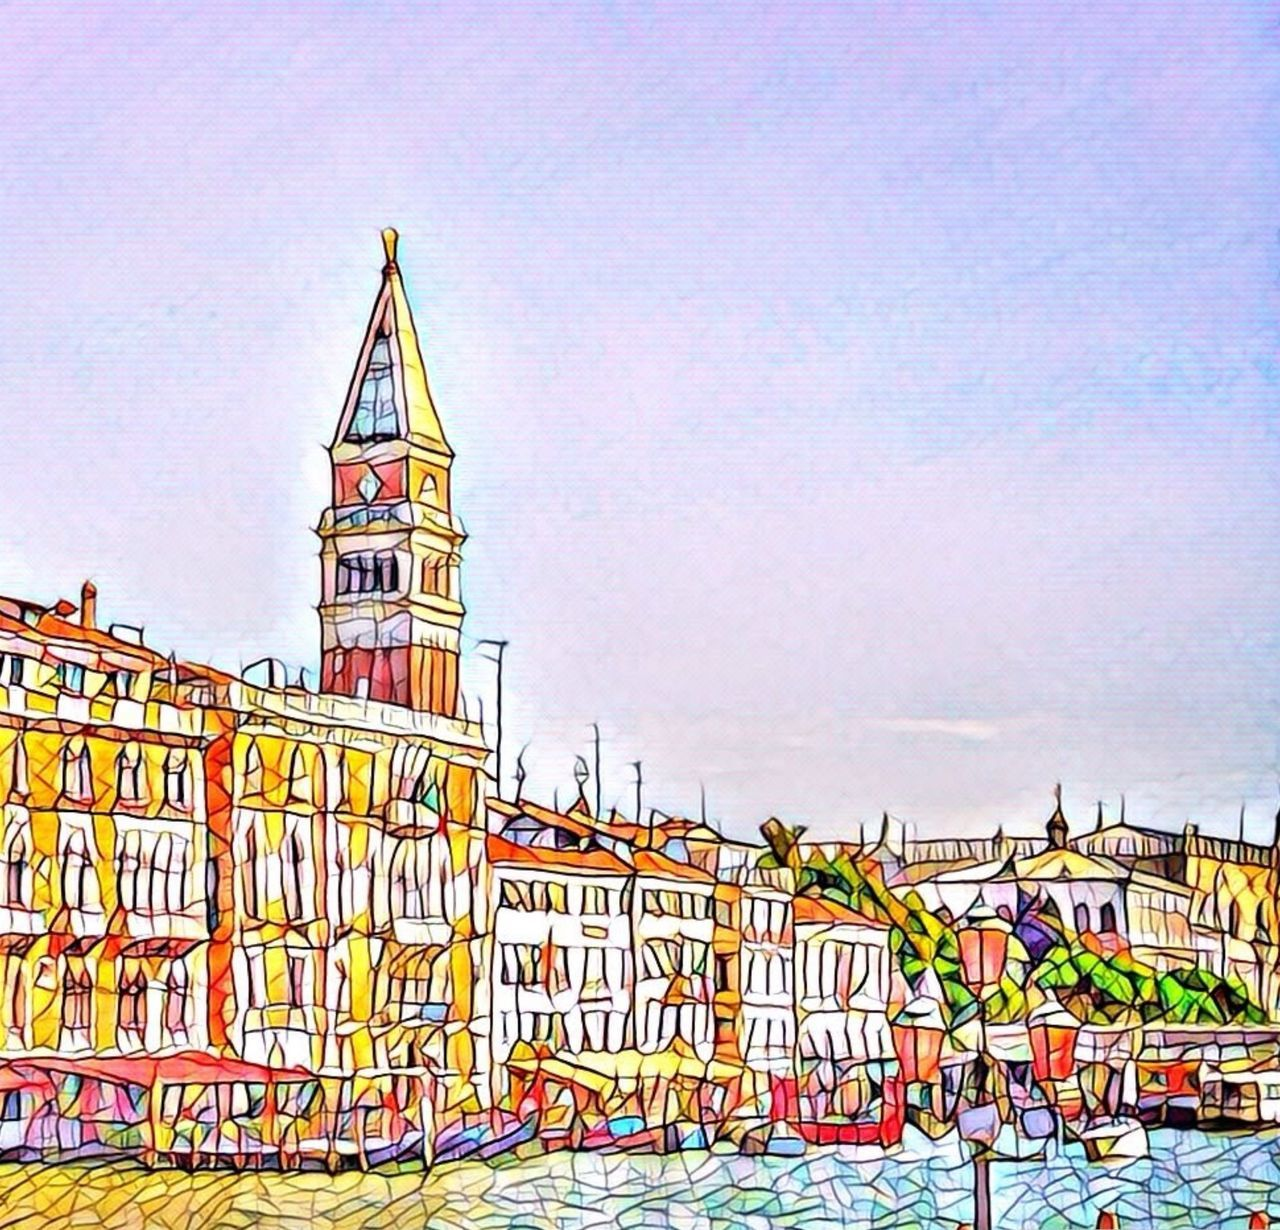 Day Sky No People Outdoors Summer Architecture City Sunlight Sunbathing Sketch Venice sketch